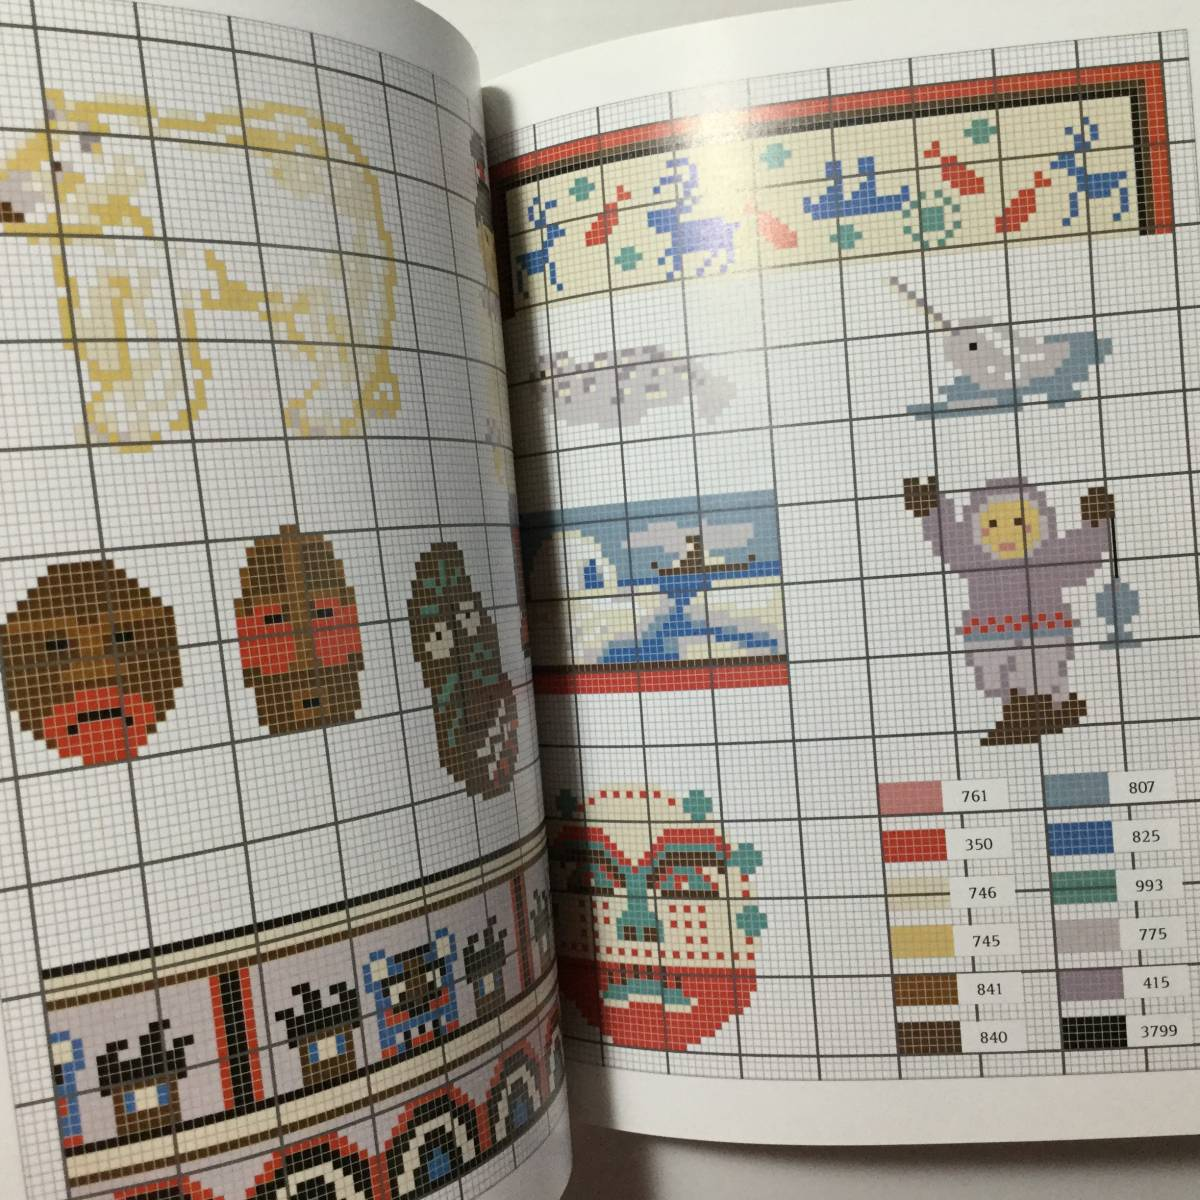 ■ARTBOOK_OUTLET■ 1-059 ★ 手芸本 新品 フランス 刺繍 クロスステッチ CROSS STITCH 図案 SPECIAL EDITION AROUND THE WORLD 希少本_画像2